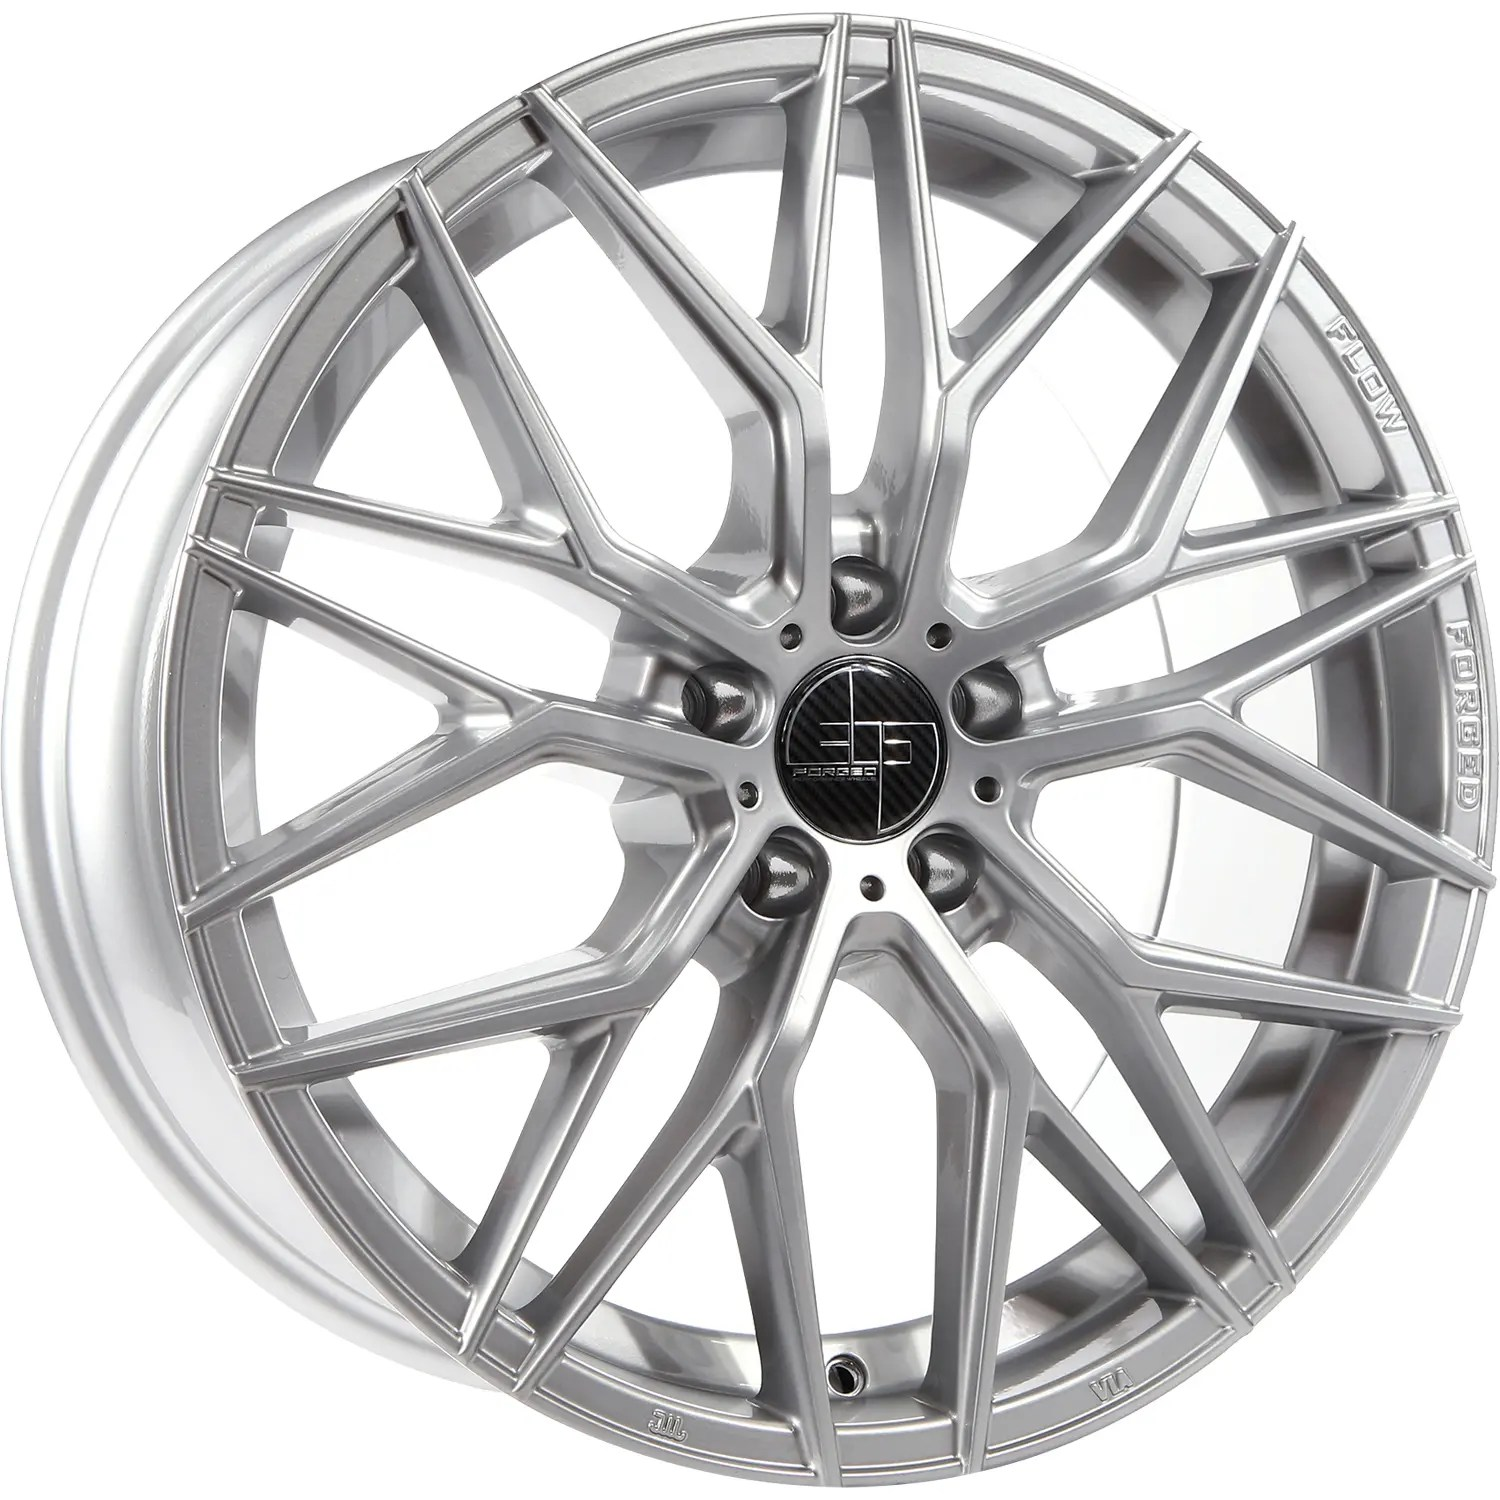 305 Forged FT107 20x9 +25mm   FT107-20900blnk+25MS6645   Fitment Industries